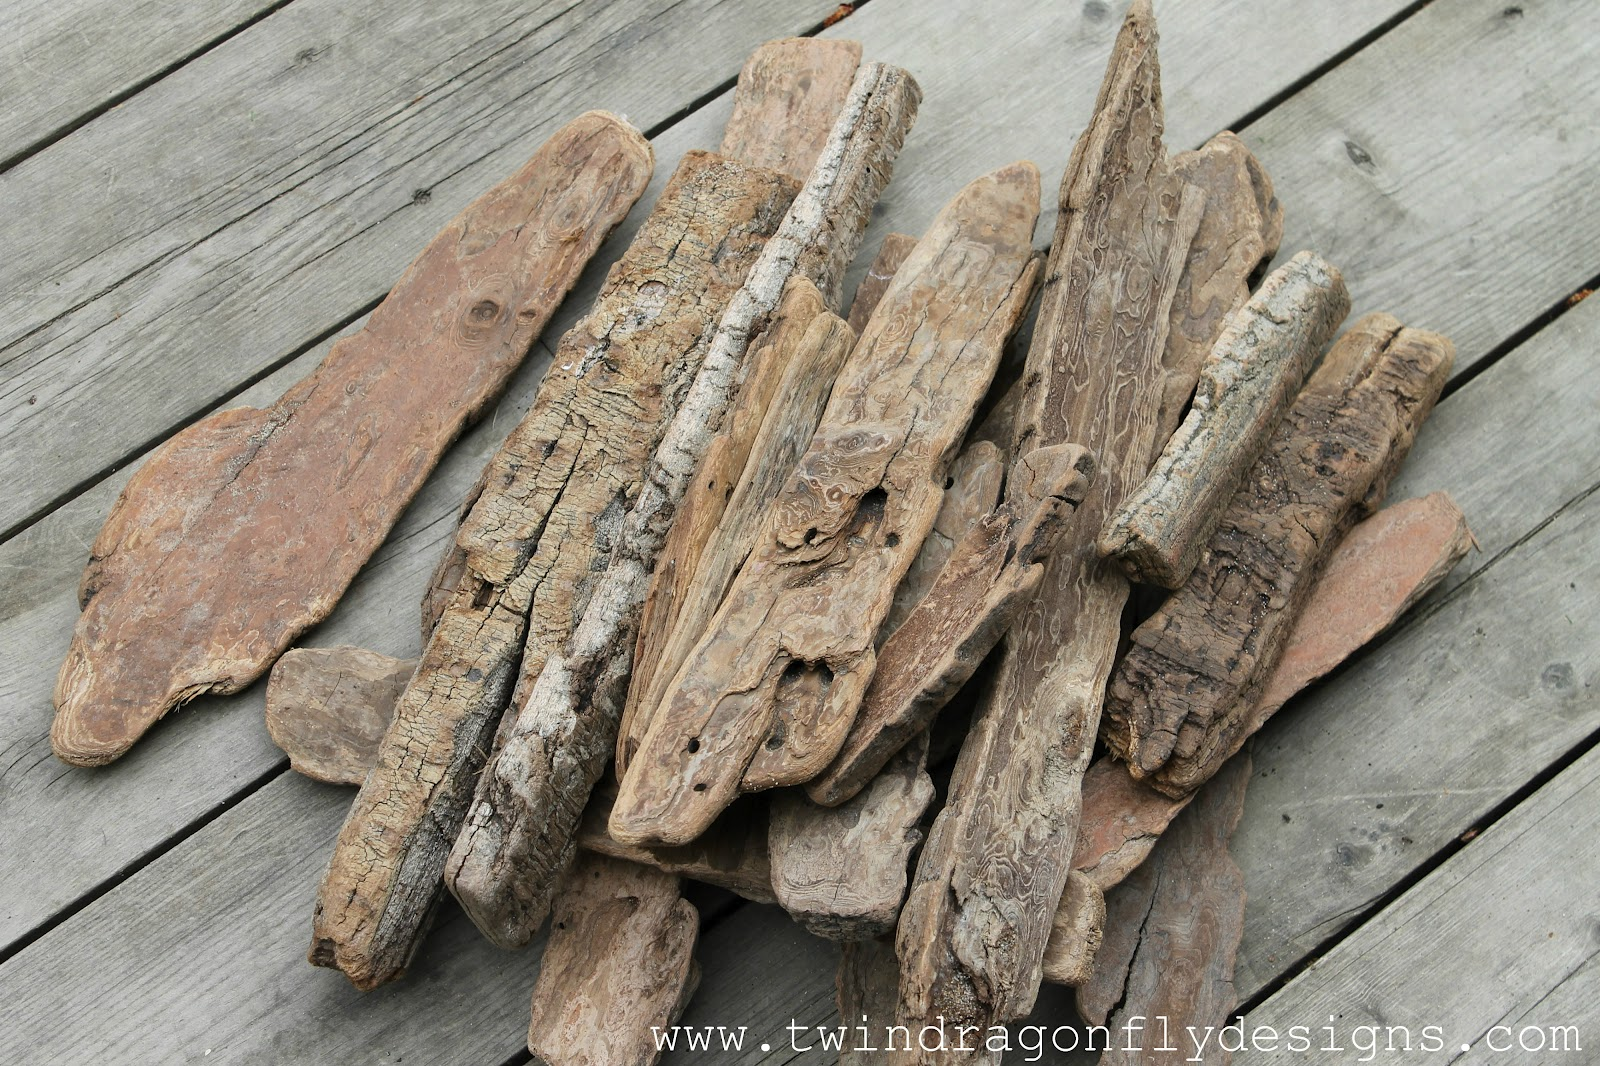 Driftwood garden signs dragonfly designs for Driftwood crafts to make